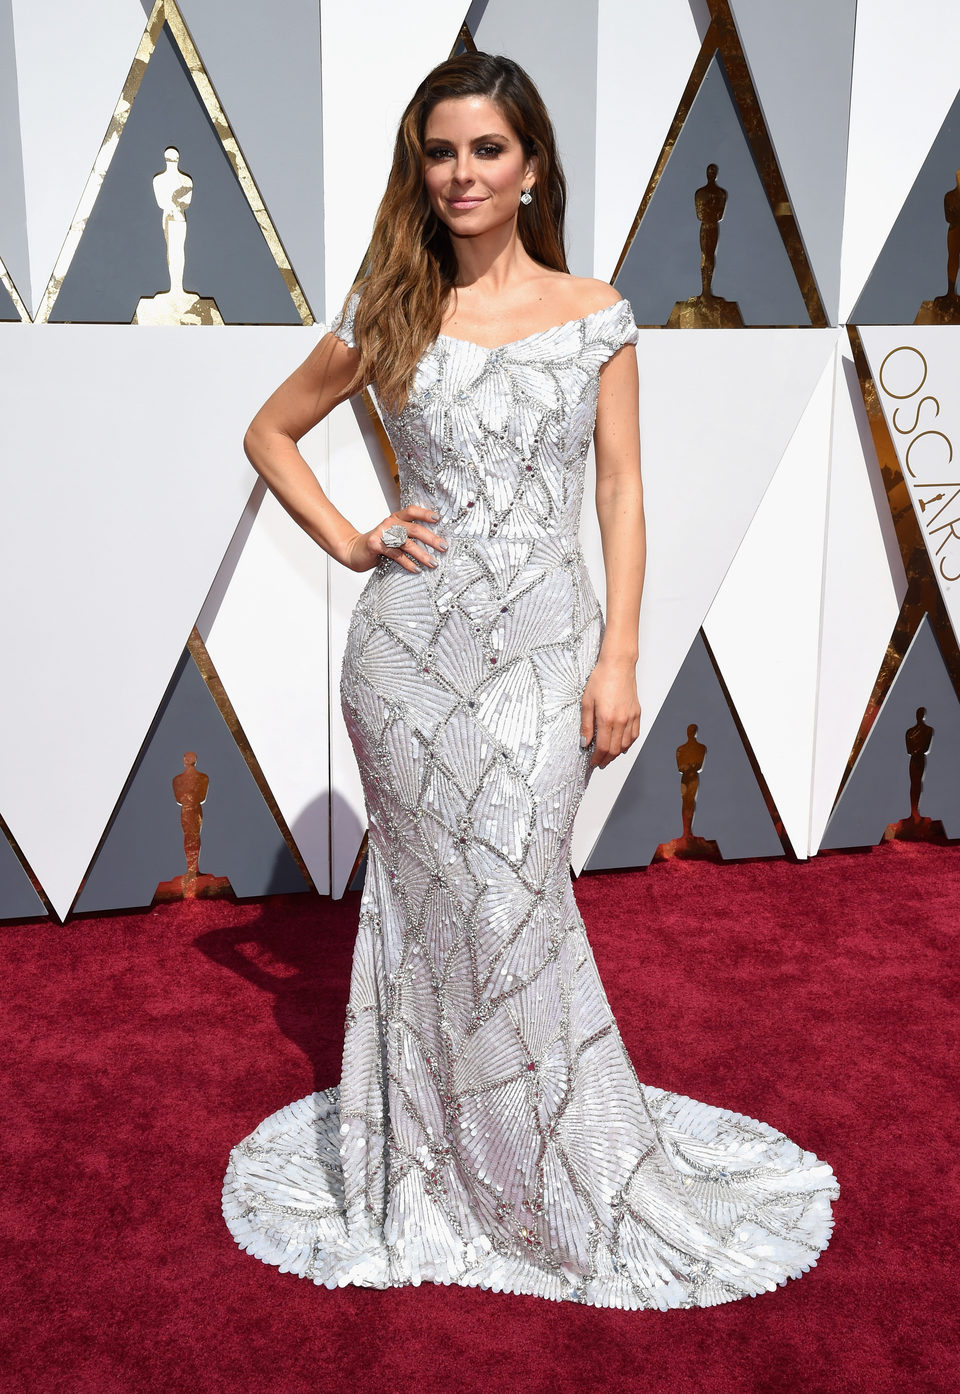 Maria Menounos at the Oscars 2016 red carpet